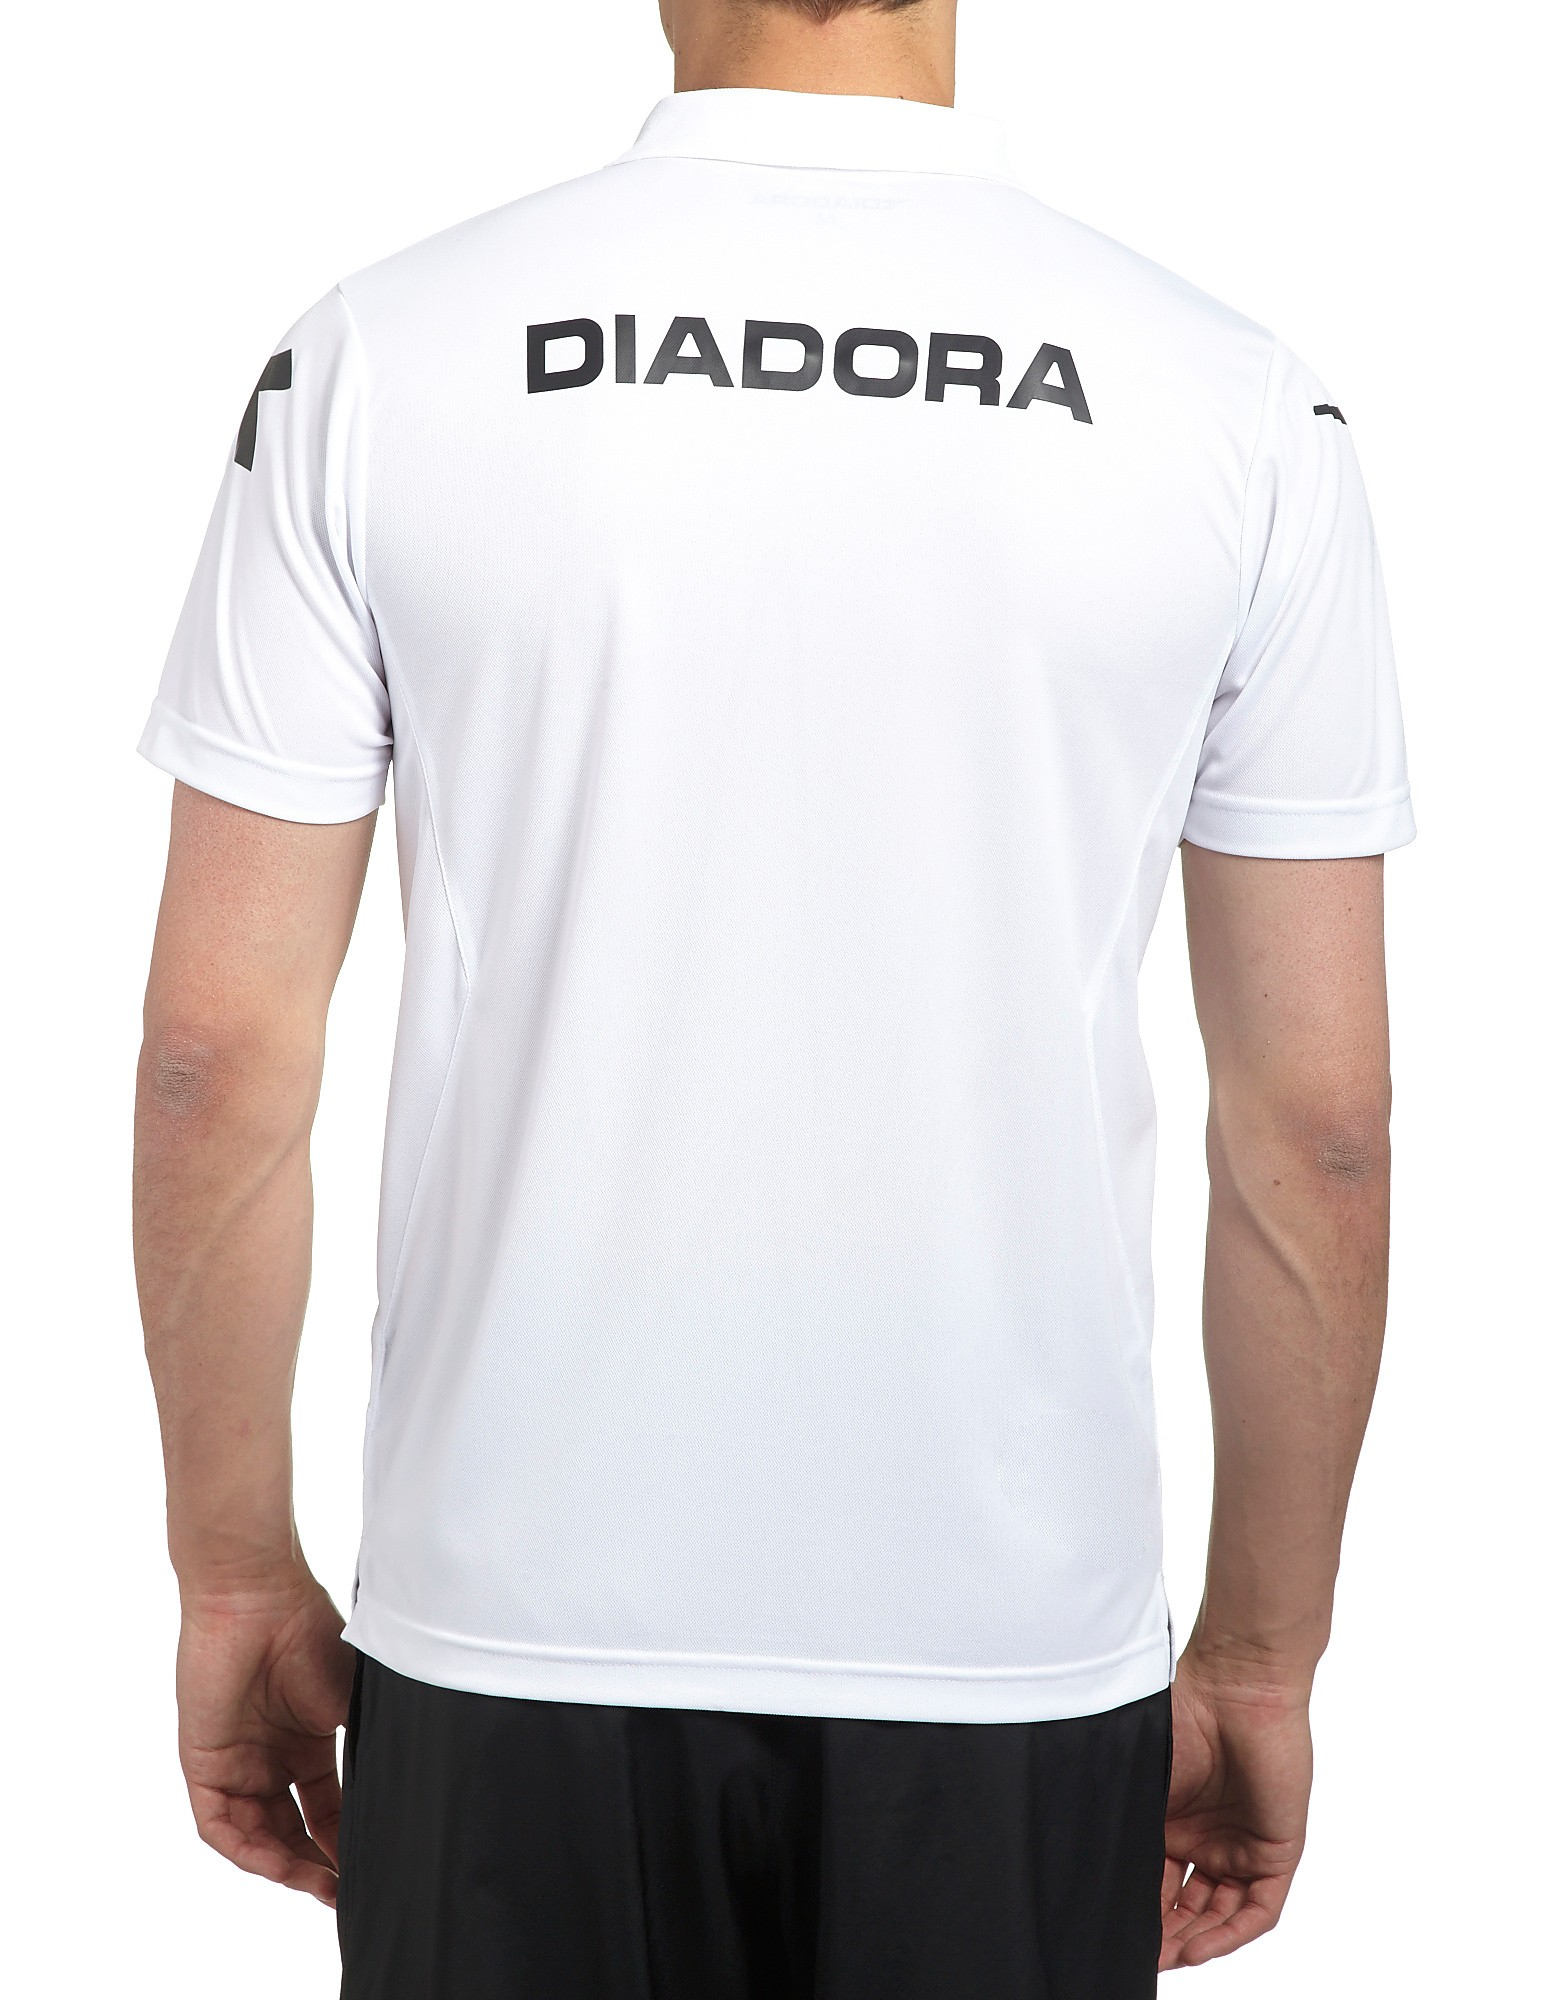 Diadora St Mirren 2013/14 Polo Shirt